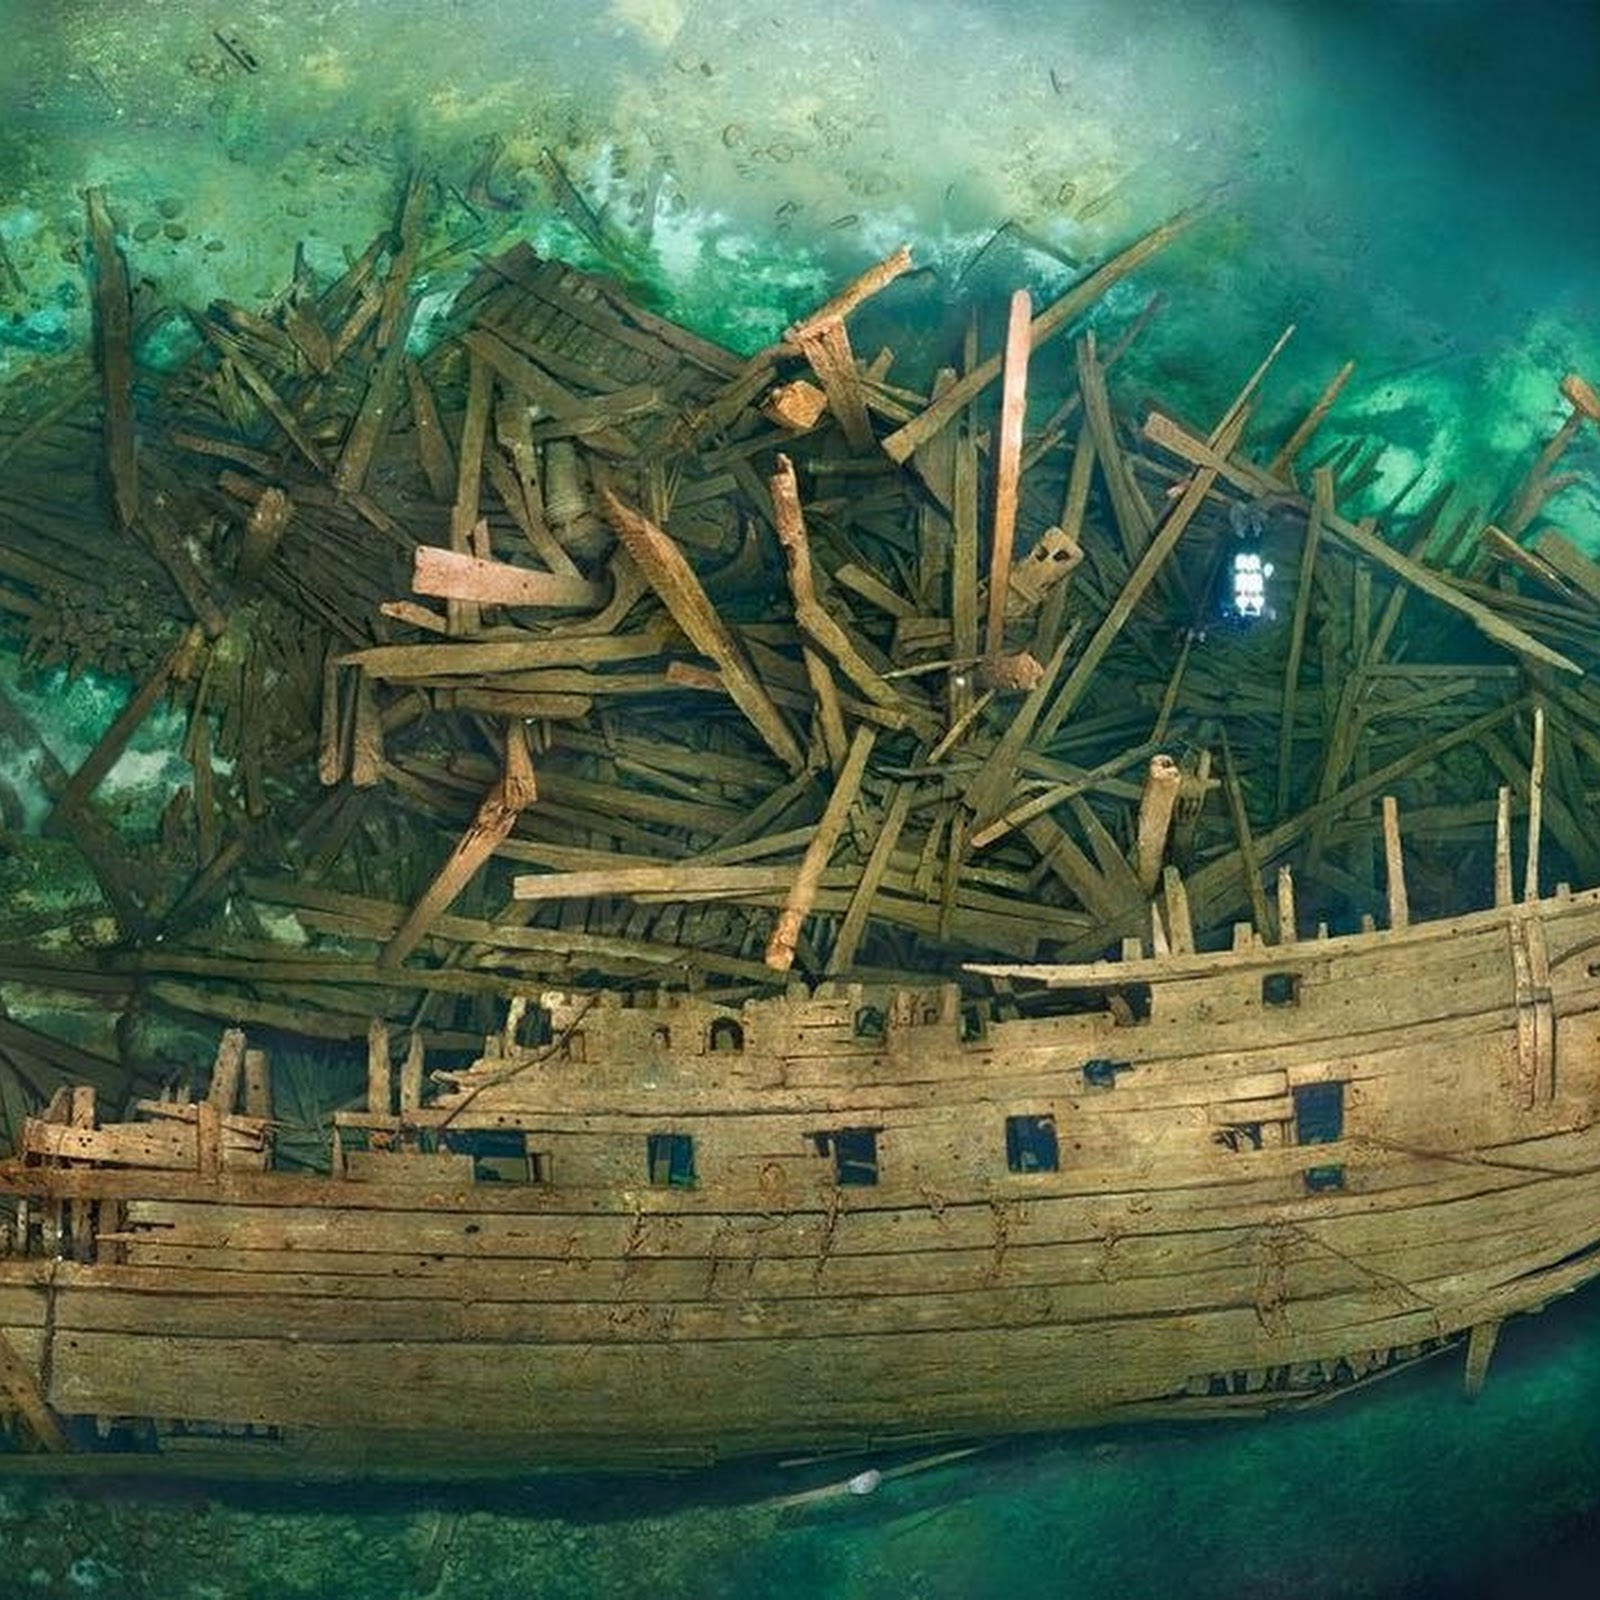 The Wreck of Swedish Warship Mars